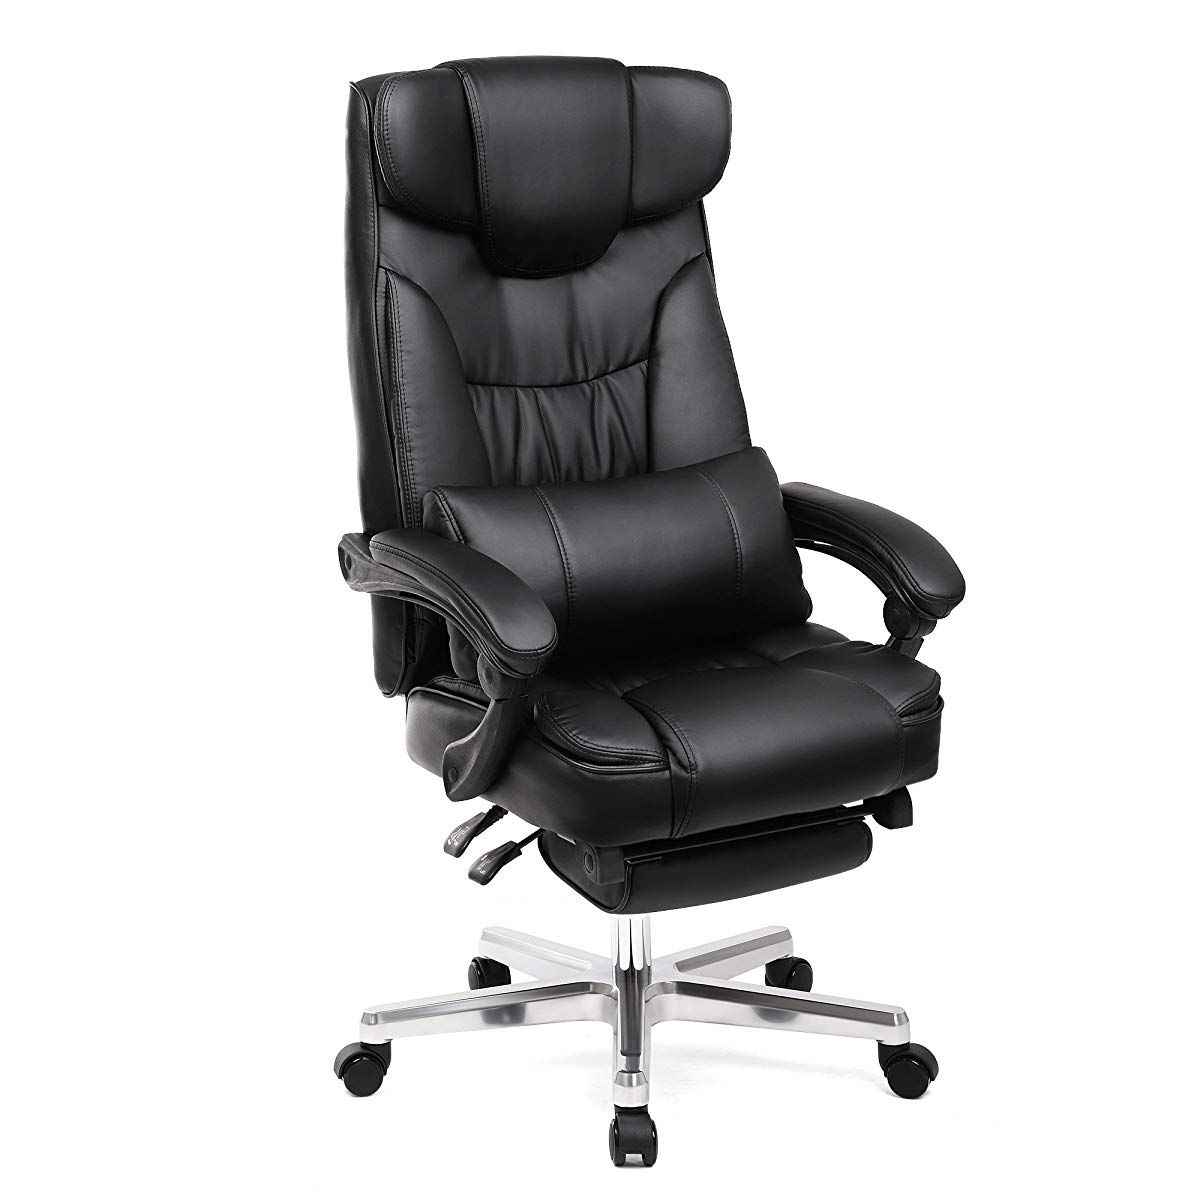 Surprising Tall Office Chair Ergonomic Executive Gaming Swivel Chair Camellatalisay Diy Chair Ideas Camellatalisaycom